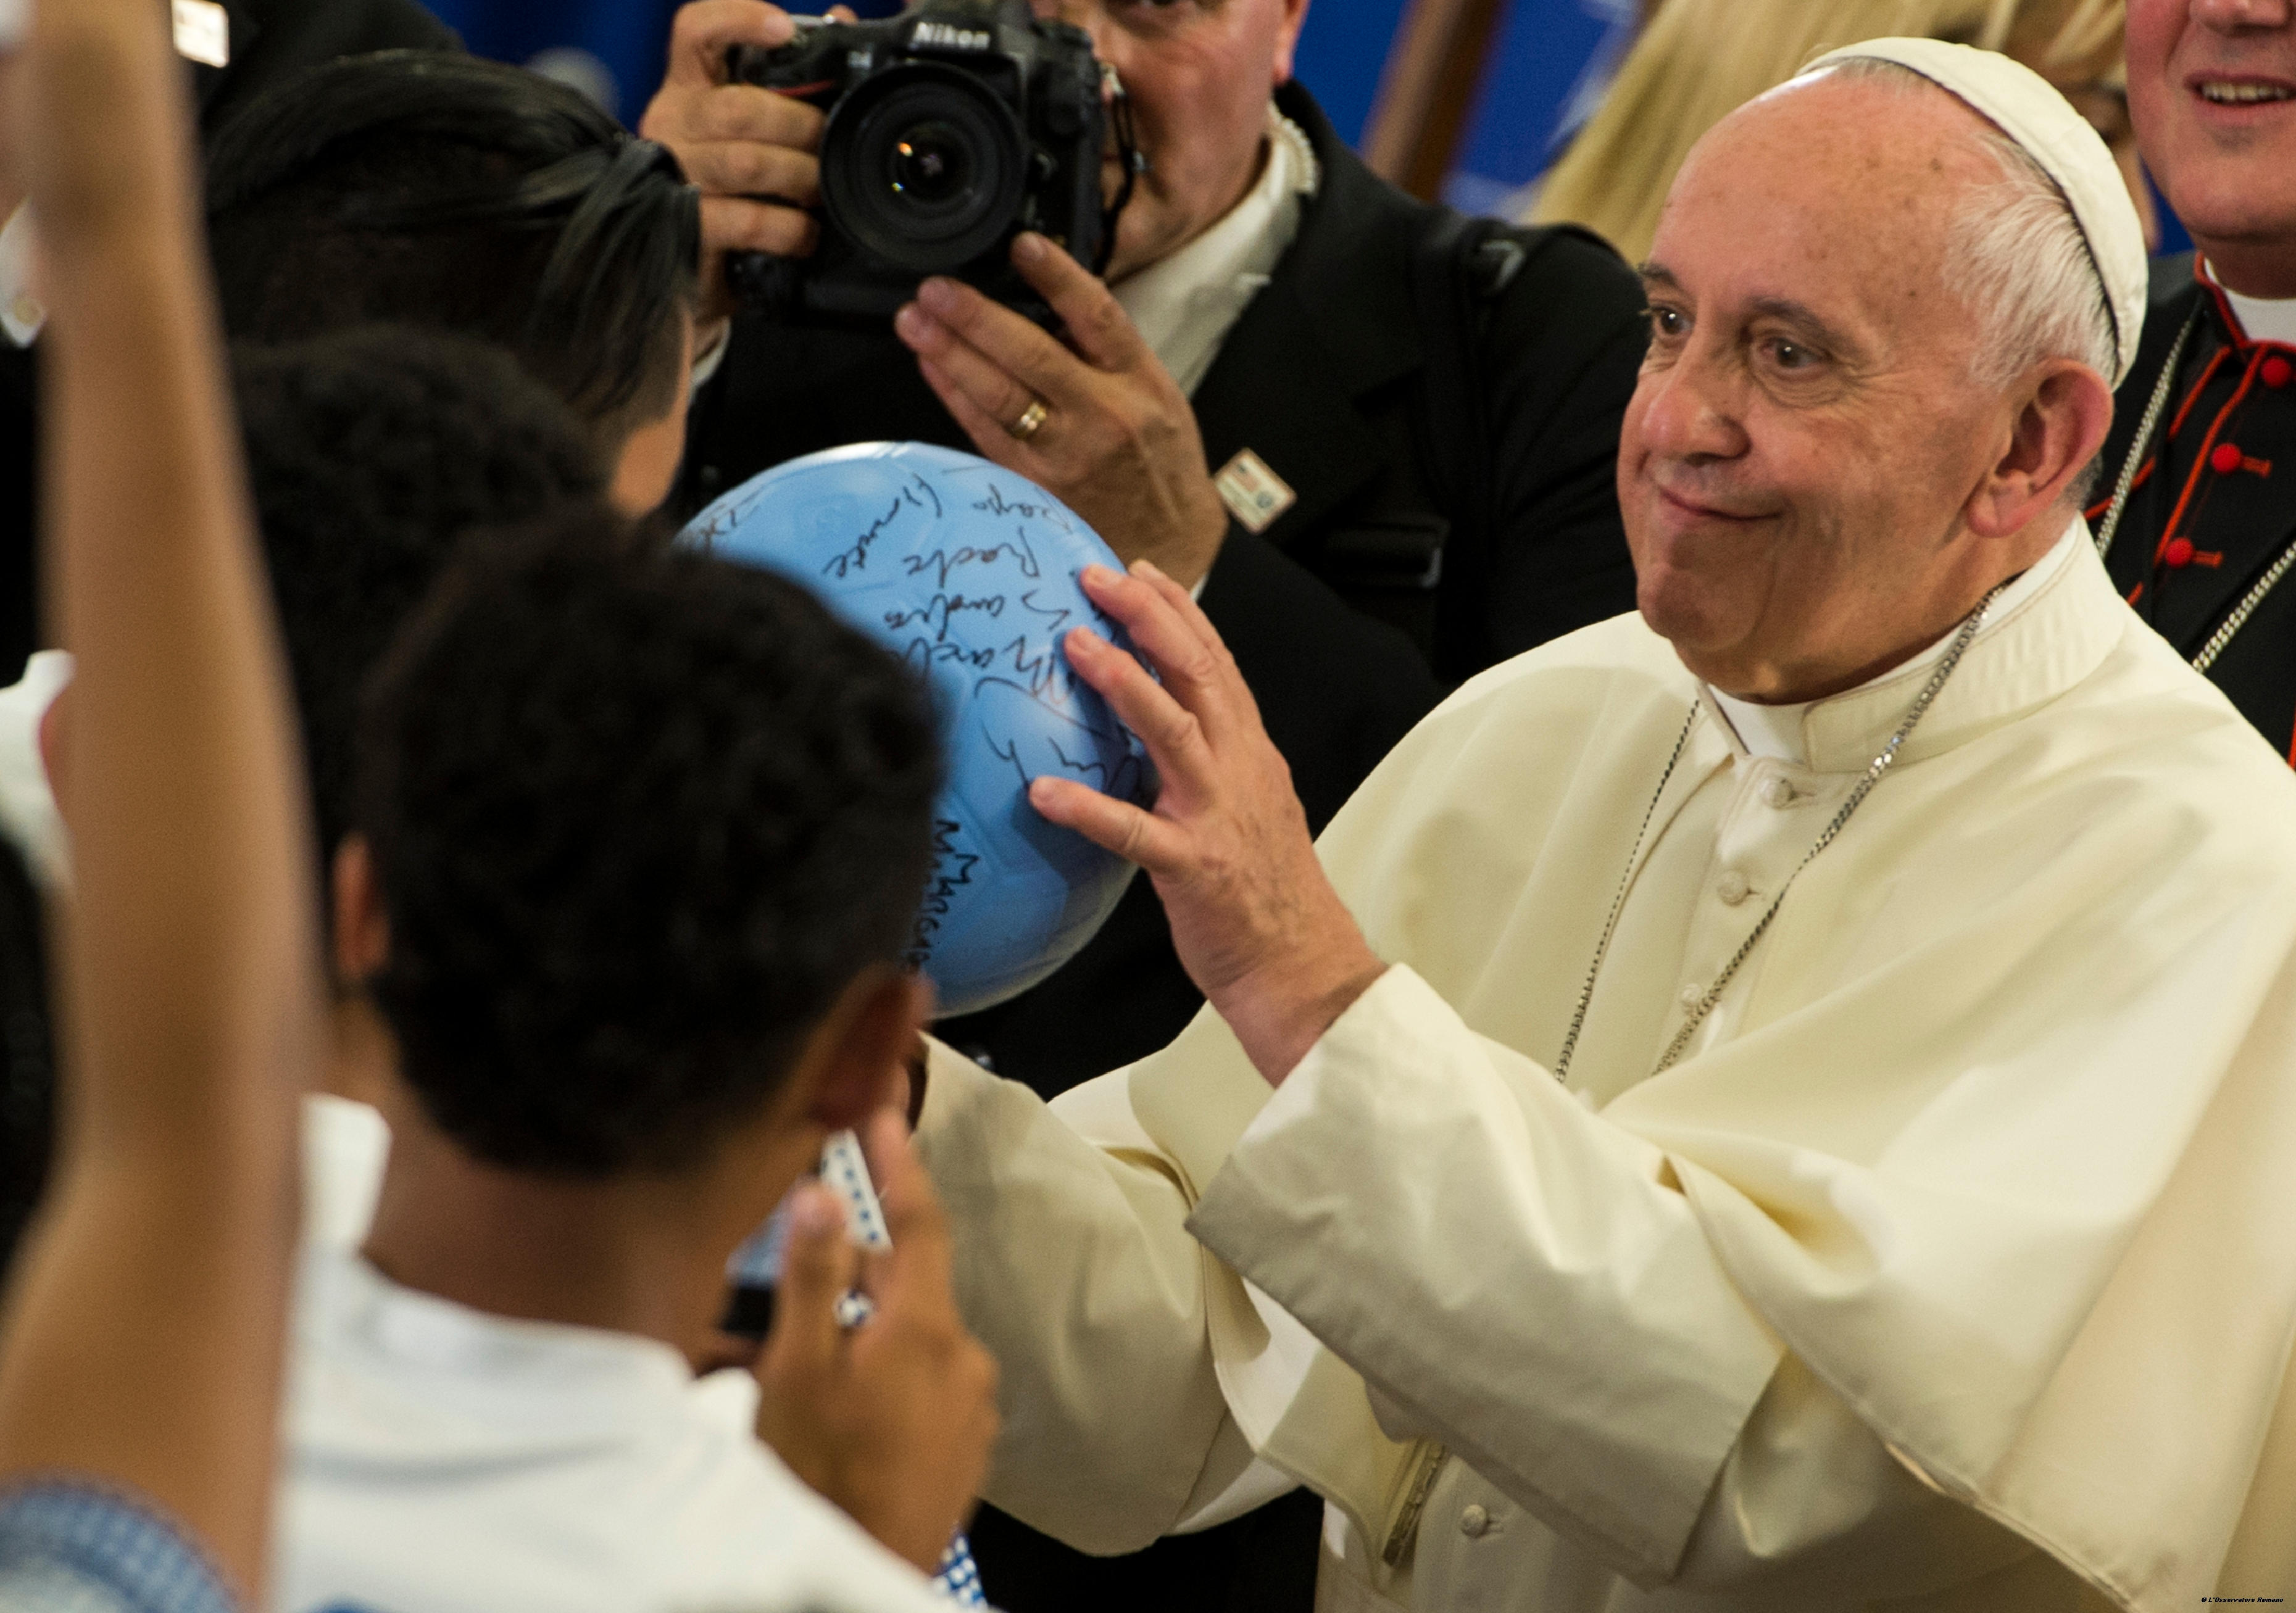 Pope Francis during his visit at Our Lady Queen of Angels School in East Harlem